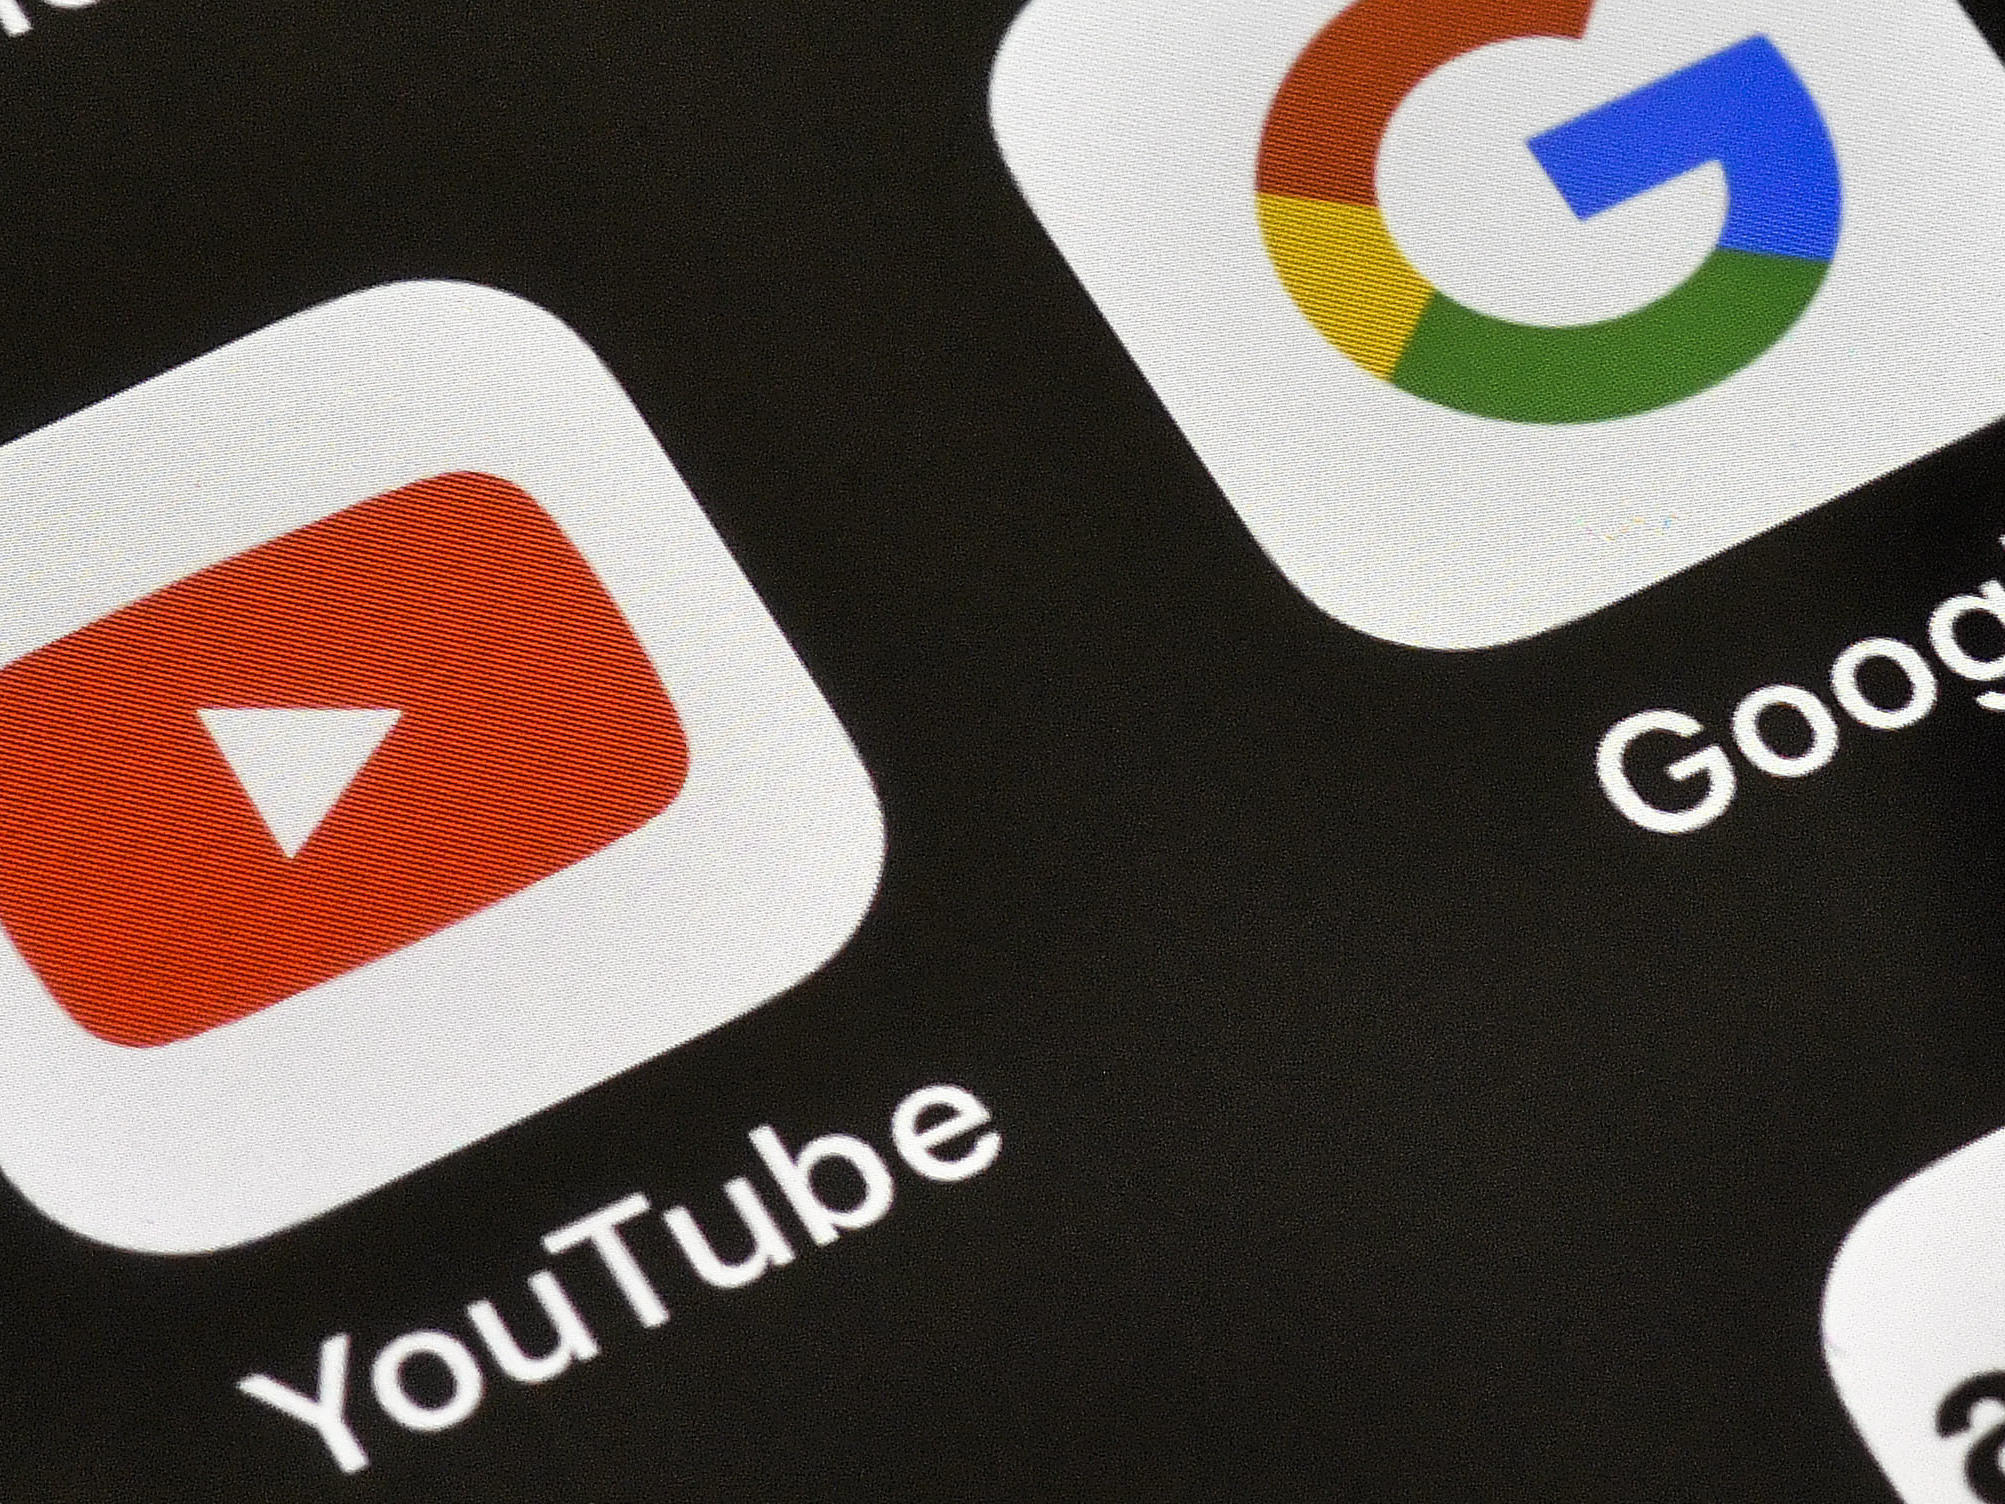 Here's what parents need to know about YouTube's pedophile problem